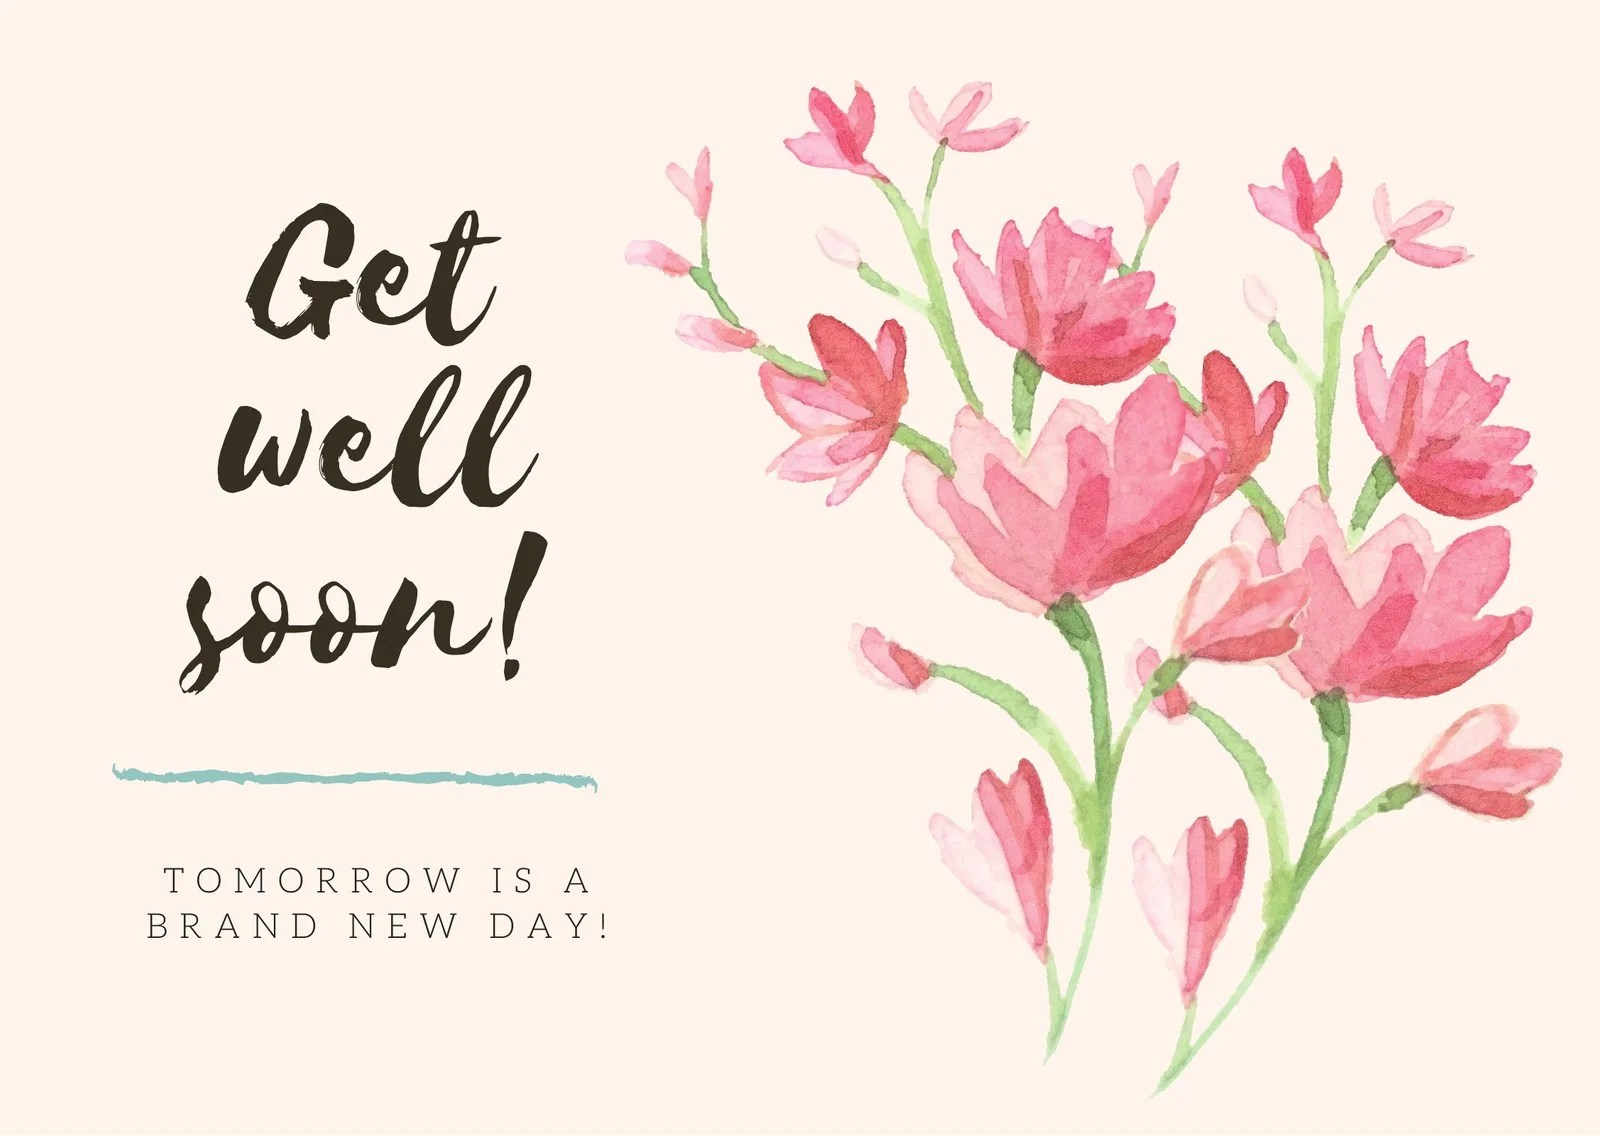 Red Flowers Get Well Soon Card